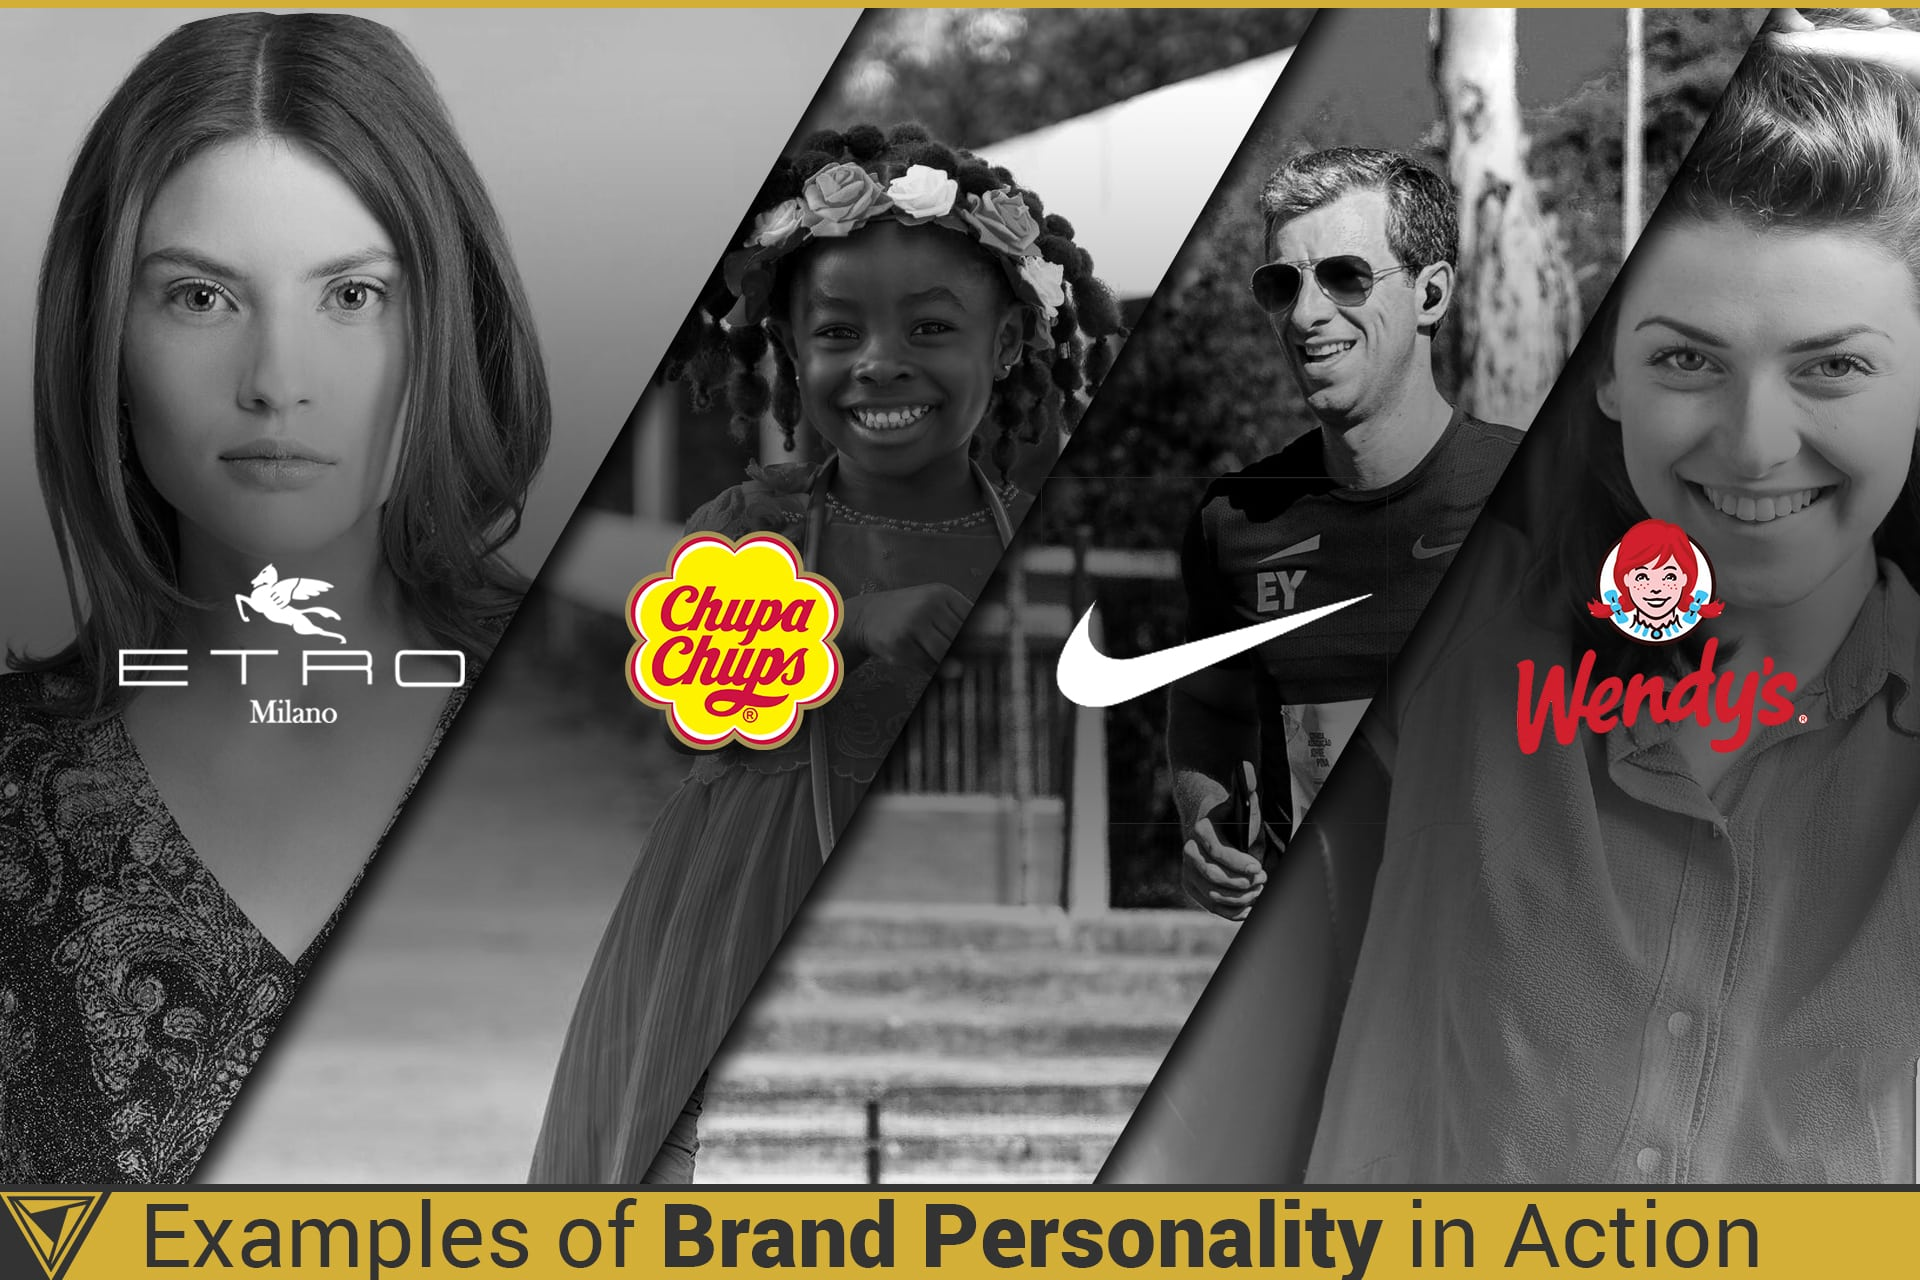 11 Examples of Brand Personality In Action